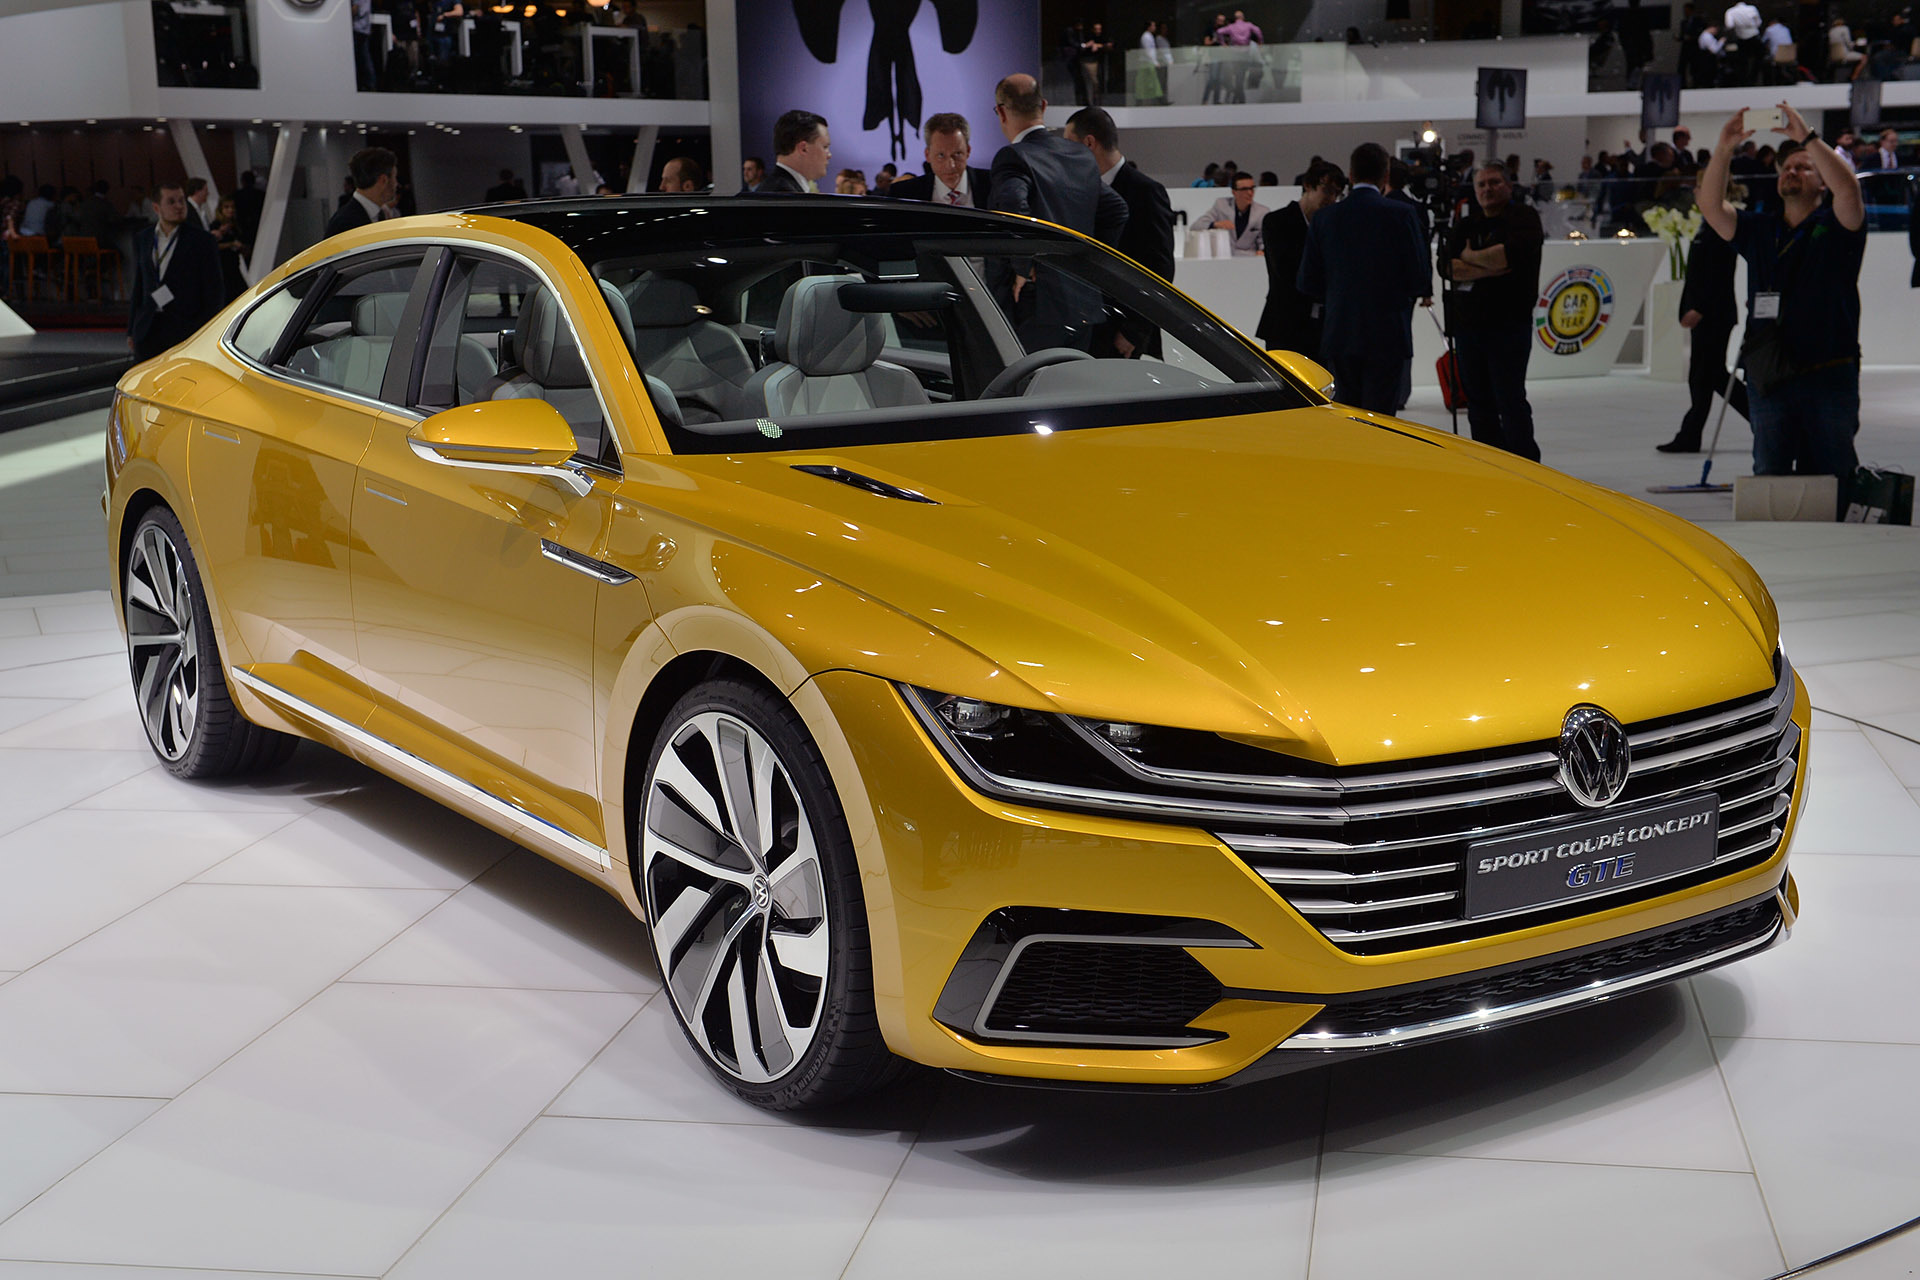 Volkswagen Sport Coupe Gte Concept Geneva 2015 Photo